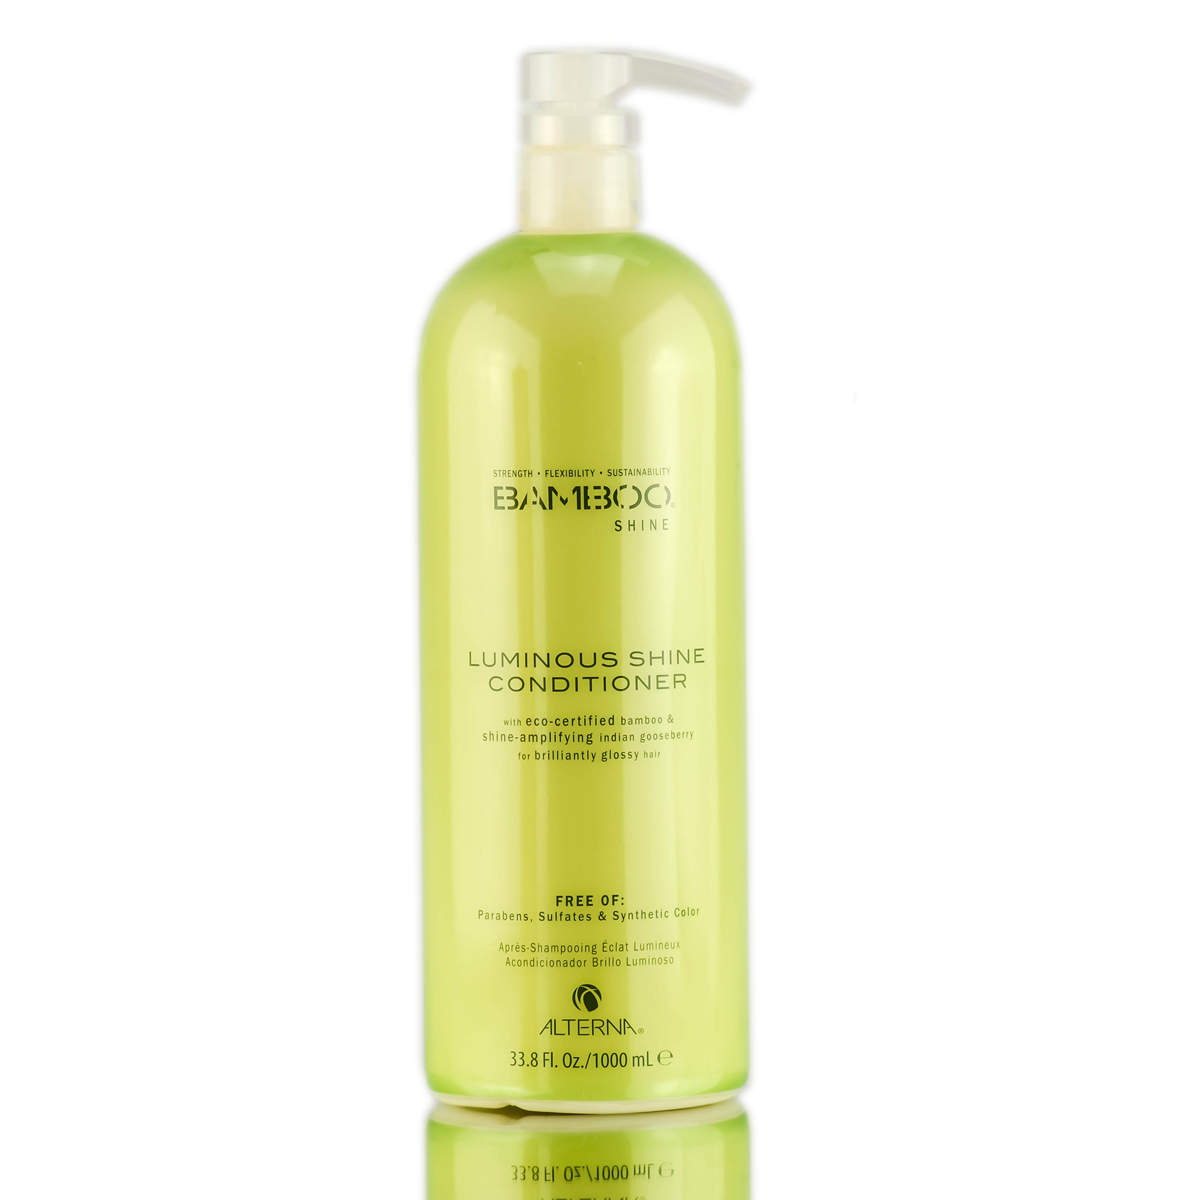 Alterna Bamboo Luminous Shine Conditioner 873509025818